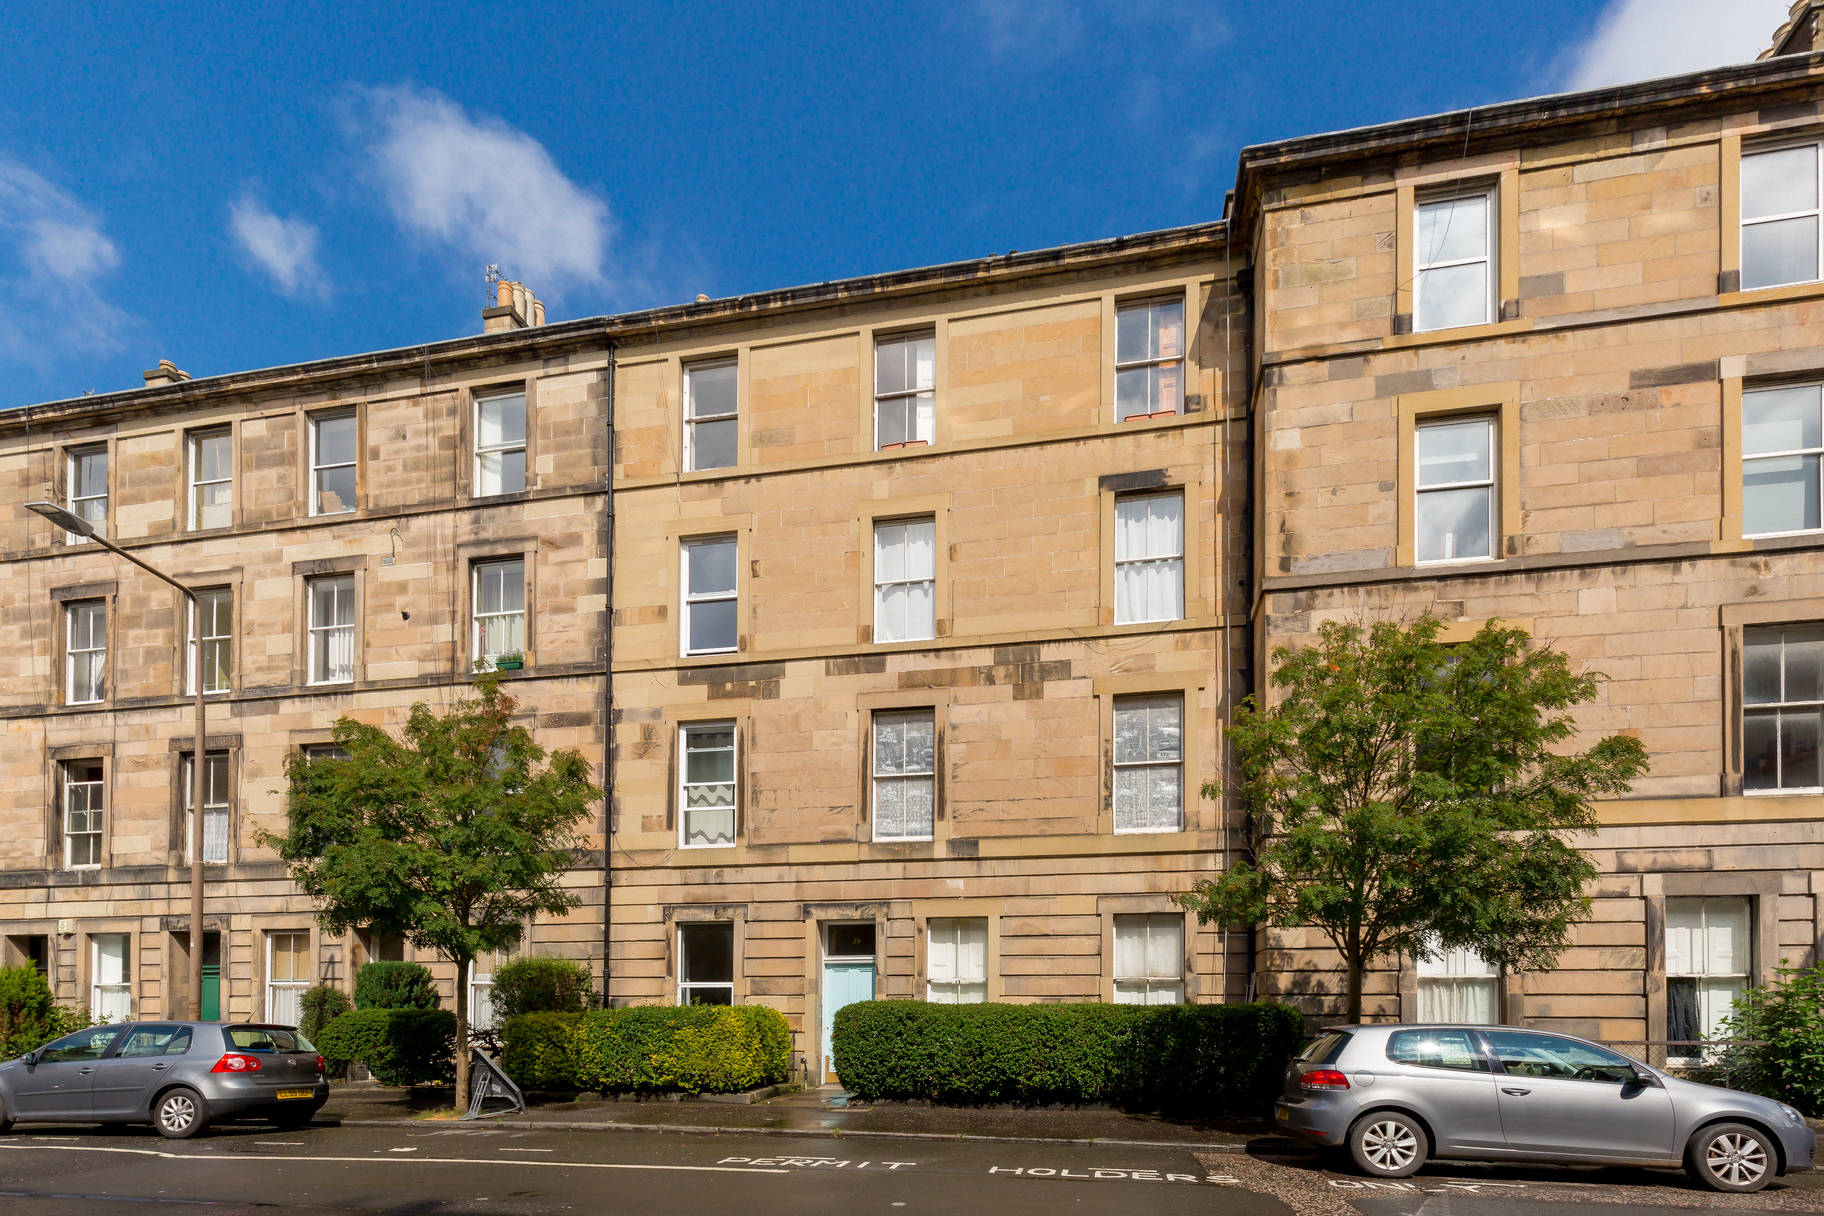 39 (GFR), Lutton Place, Edinburgh, EH8 9PF